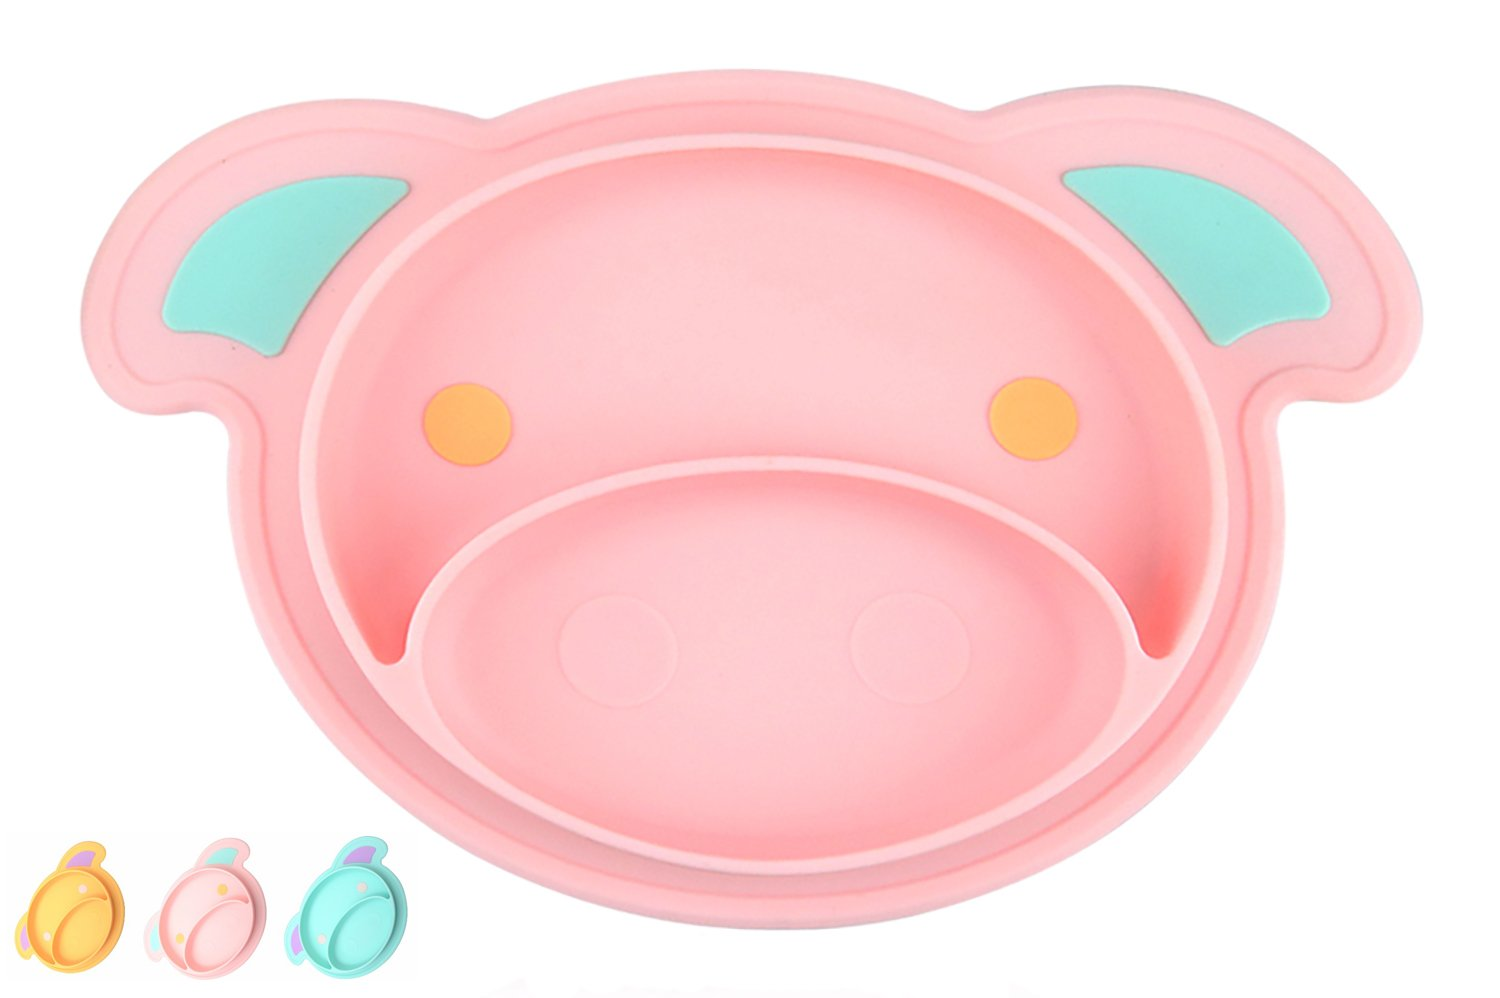 Toddler Suction Plate and Bowl That Stick to highChair Tray, Non Slip Silicone Feeding Placemat for Babies, Infant, Divided Baby Dishes, Perfect Kids Plates, Dishwasher, Microwave Safe (Pink)